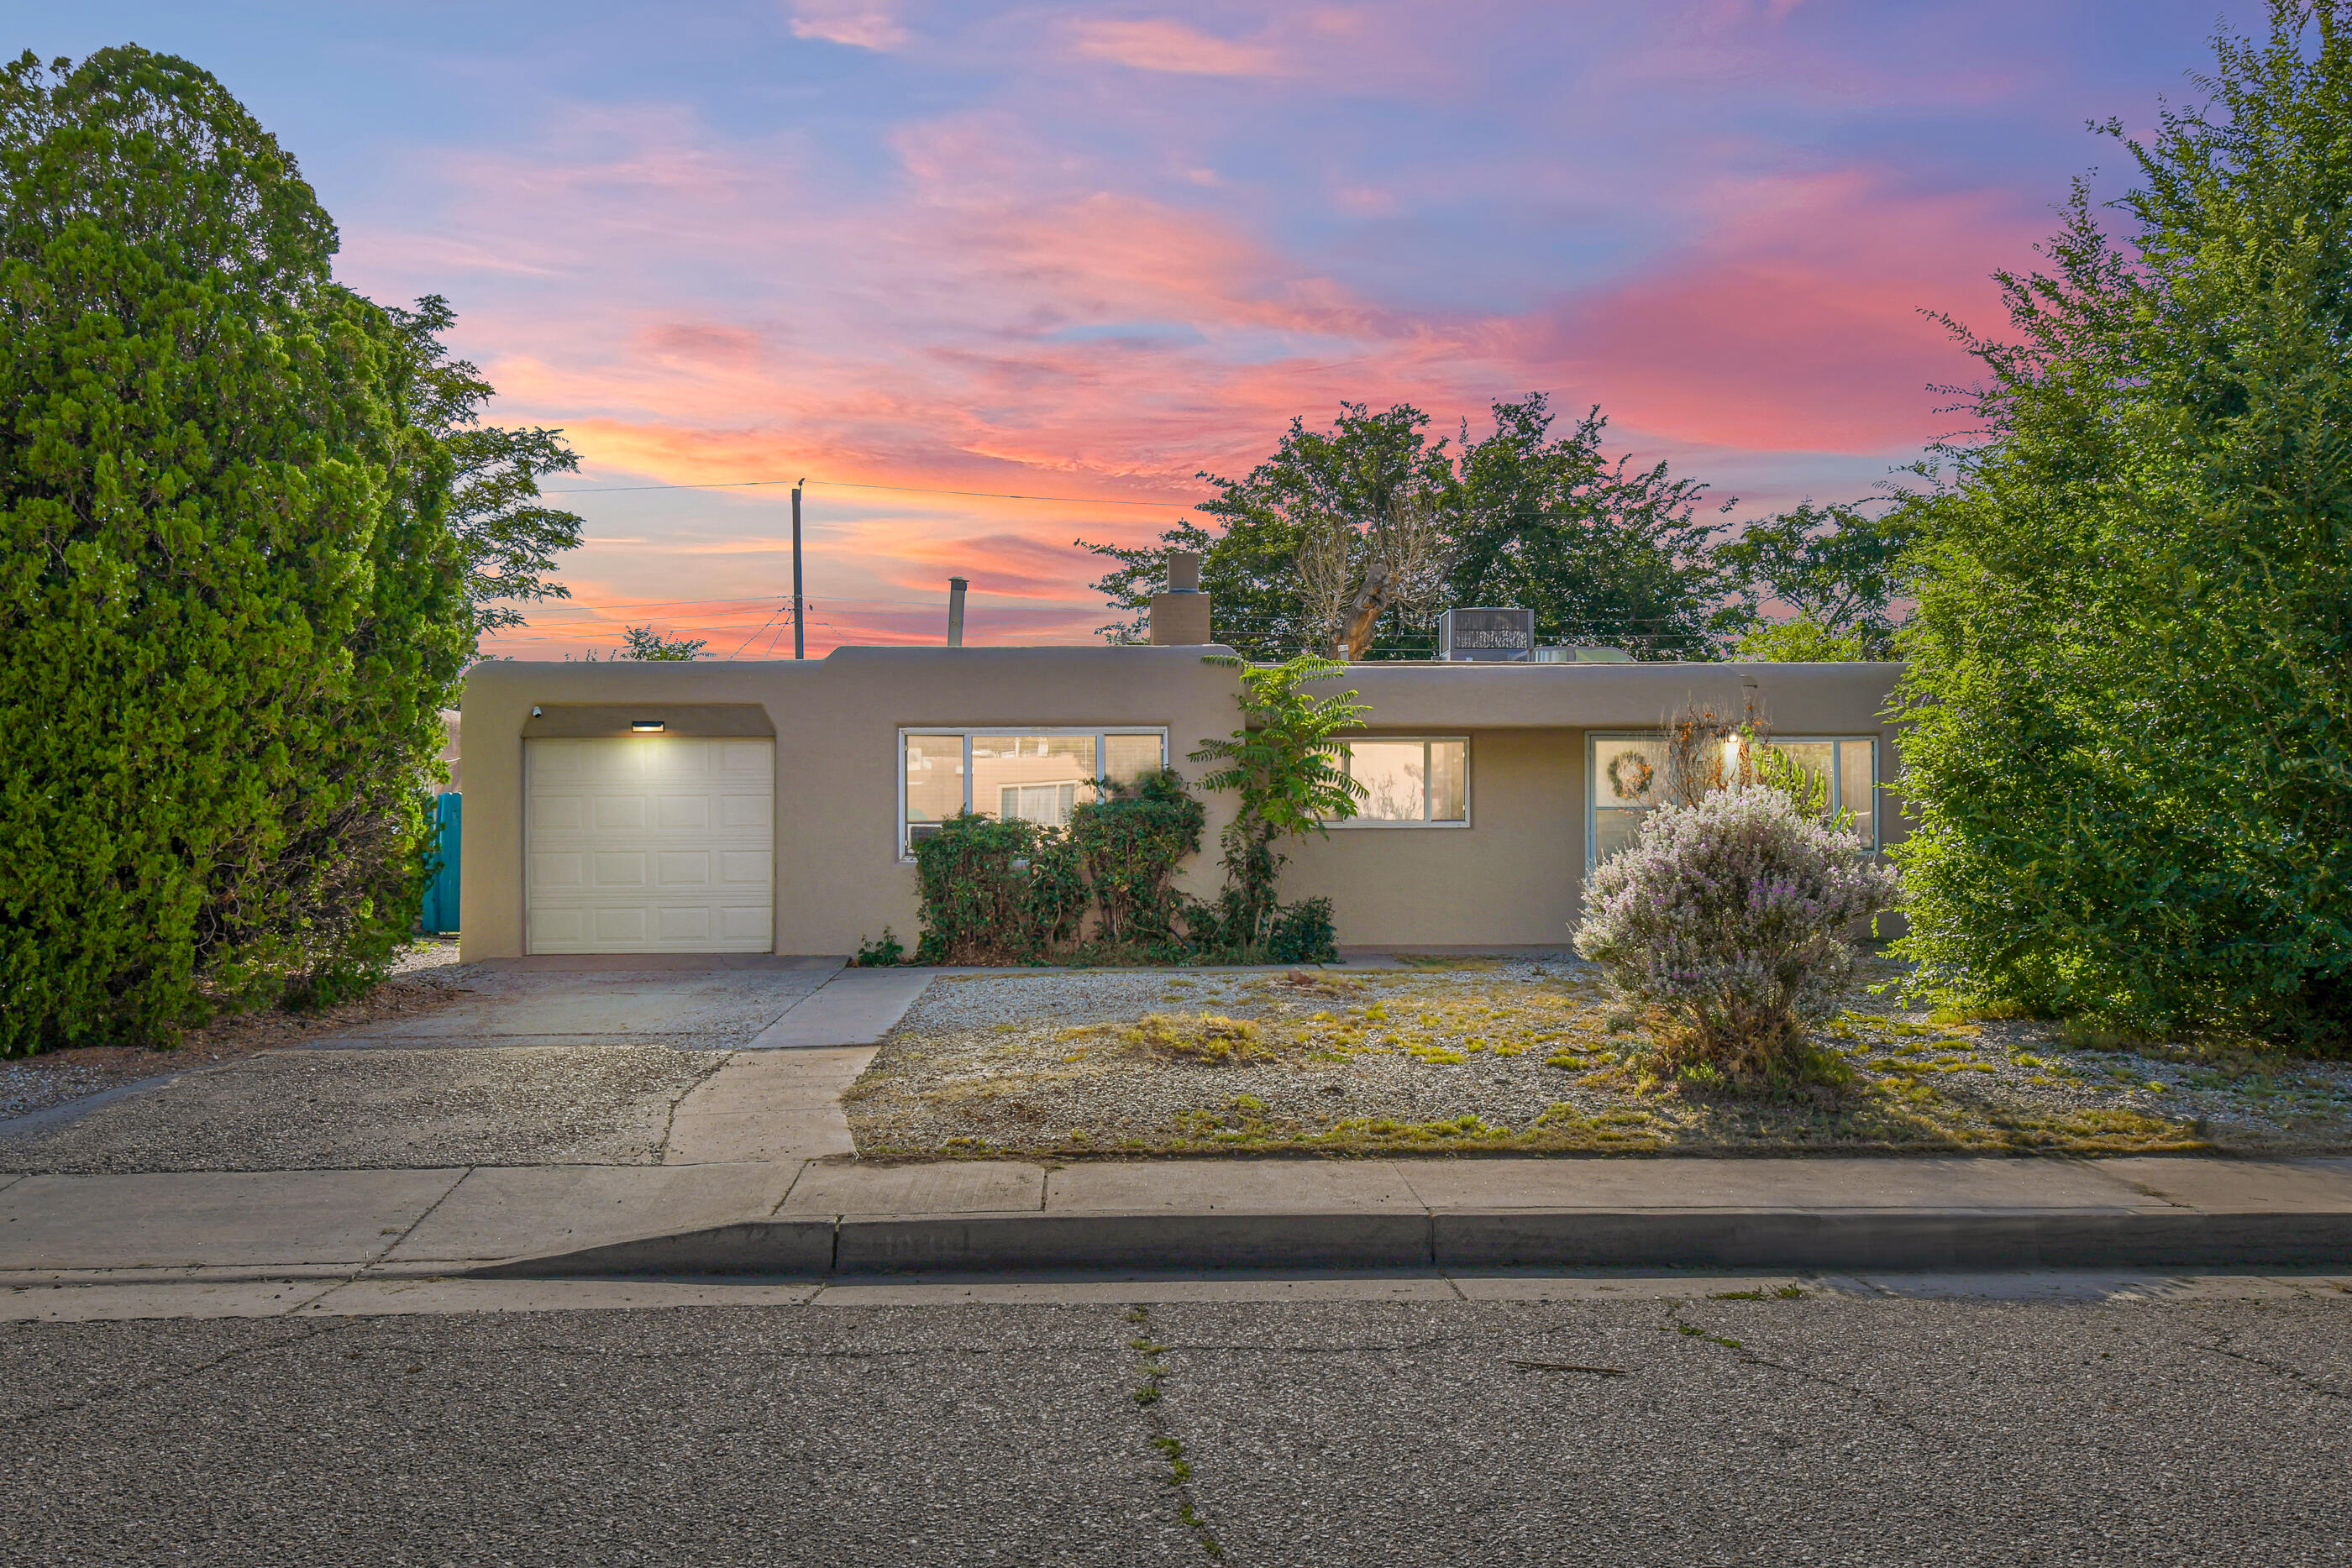 3 bed, 2 bath, 2 living areas, and beautiful kitchen. This charming little North East Heights home located near Uptown, KAFB, and Coronado center won't last long! Huge backyard with covered patio. Backyard needs some TLC. New HVAC and hot water heater unit added in 2019. Updated Stucco, laminate, and carpet.